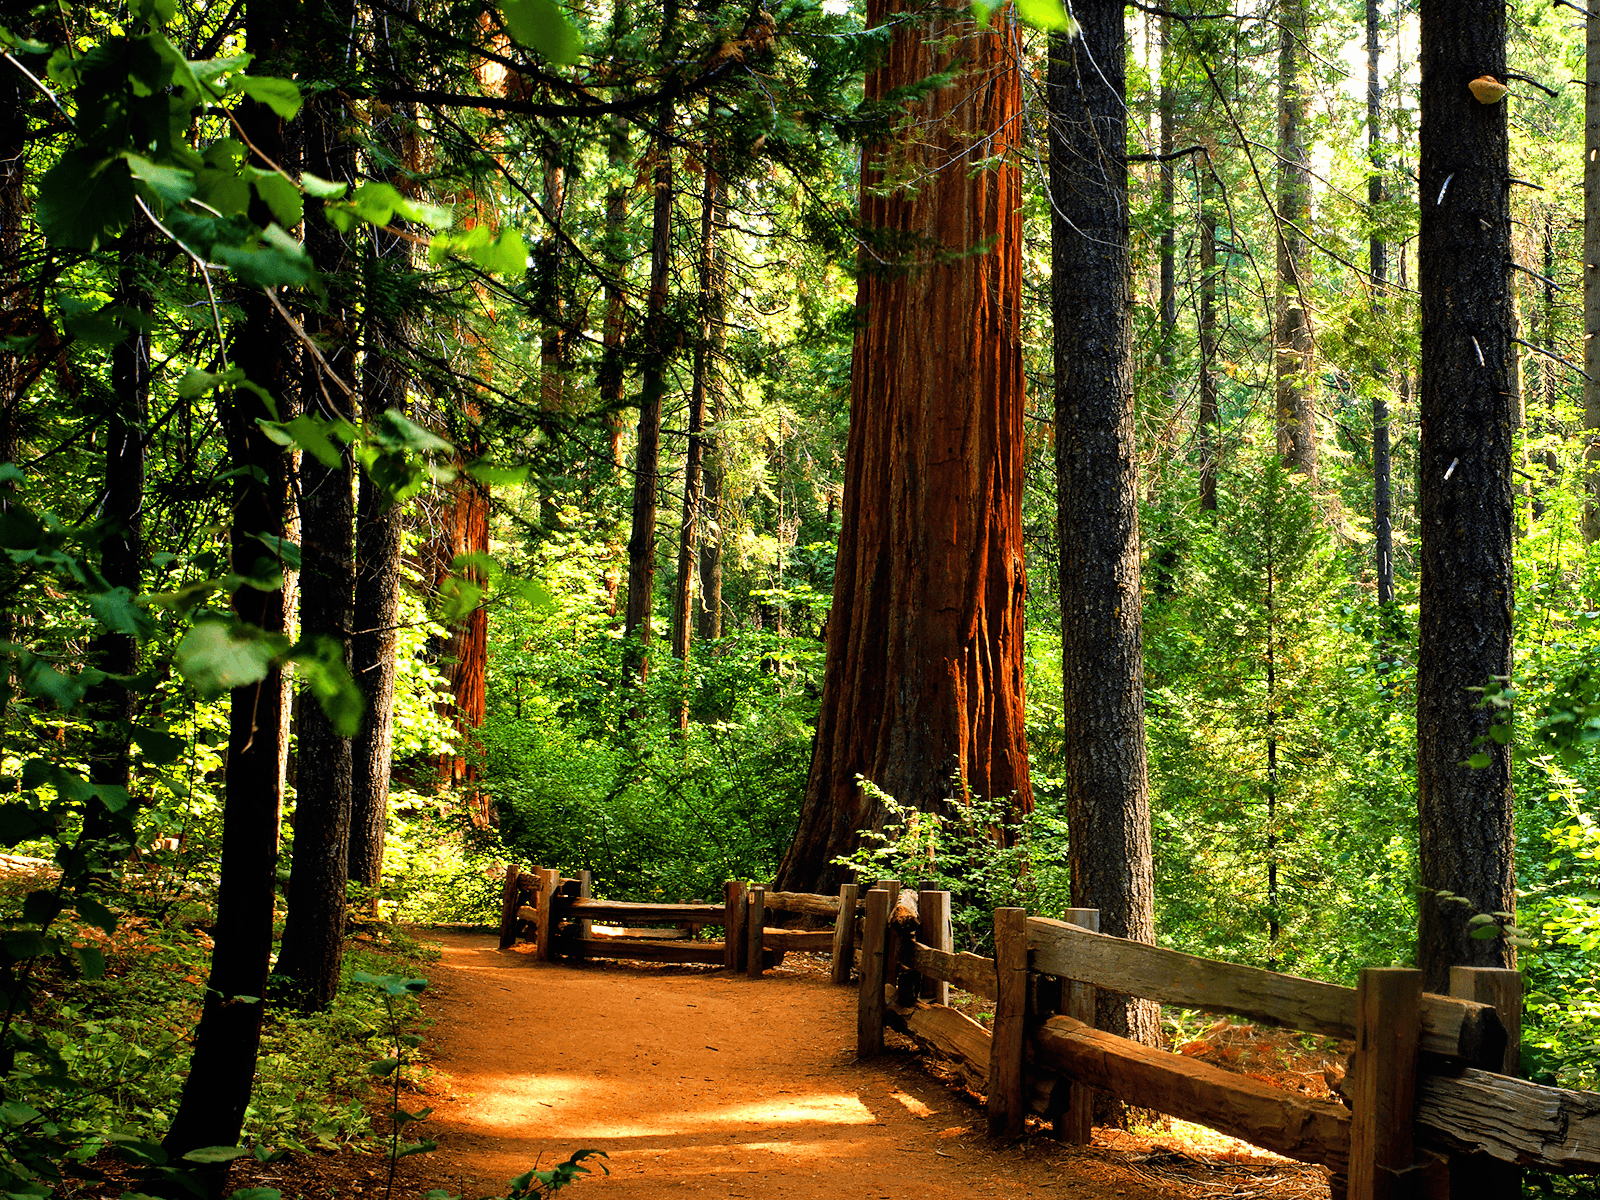 1600x1200 Redwoods Backgrounds And Wallpapers Wallpapersafari Forest Wallpaper California Wallpaper Redwood Forest